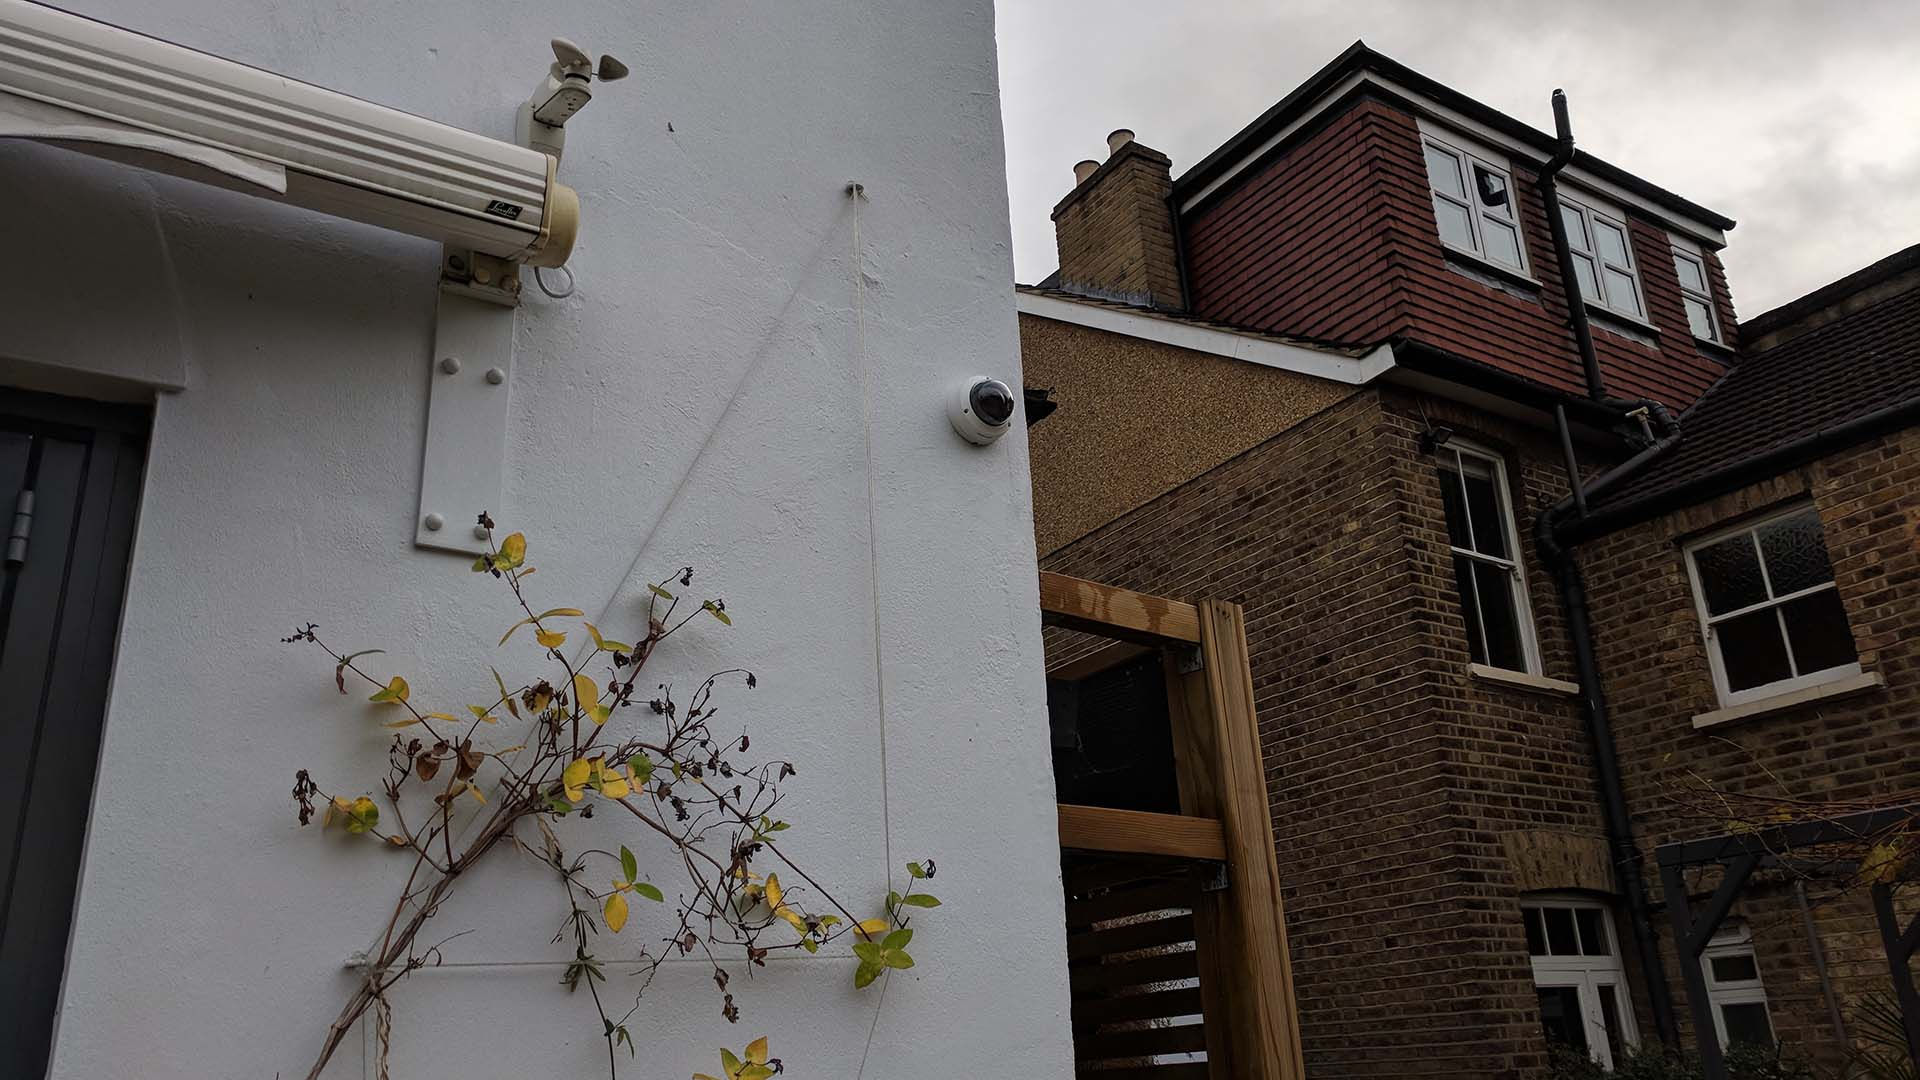 CCTV Installation in South Woodford